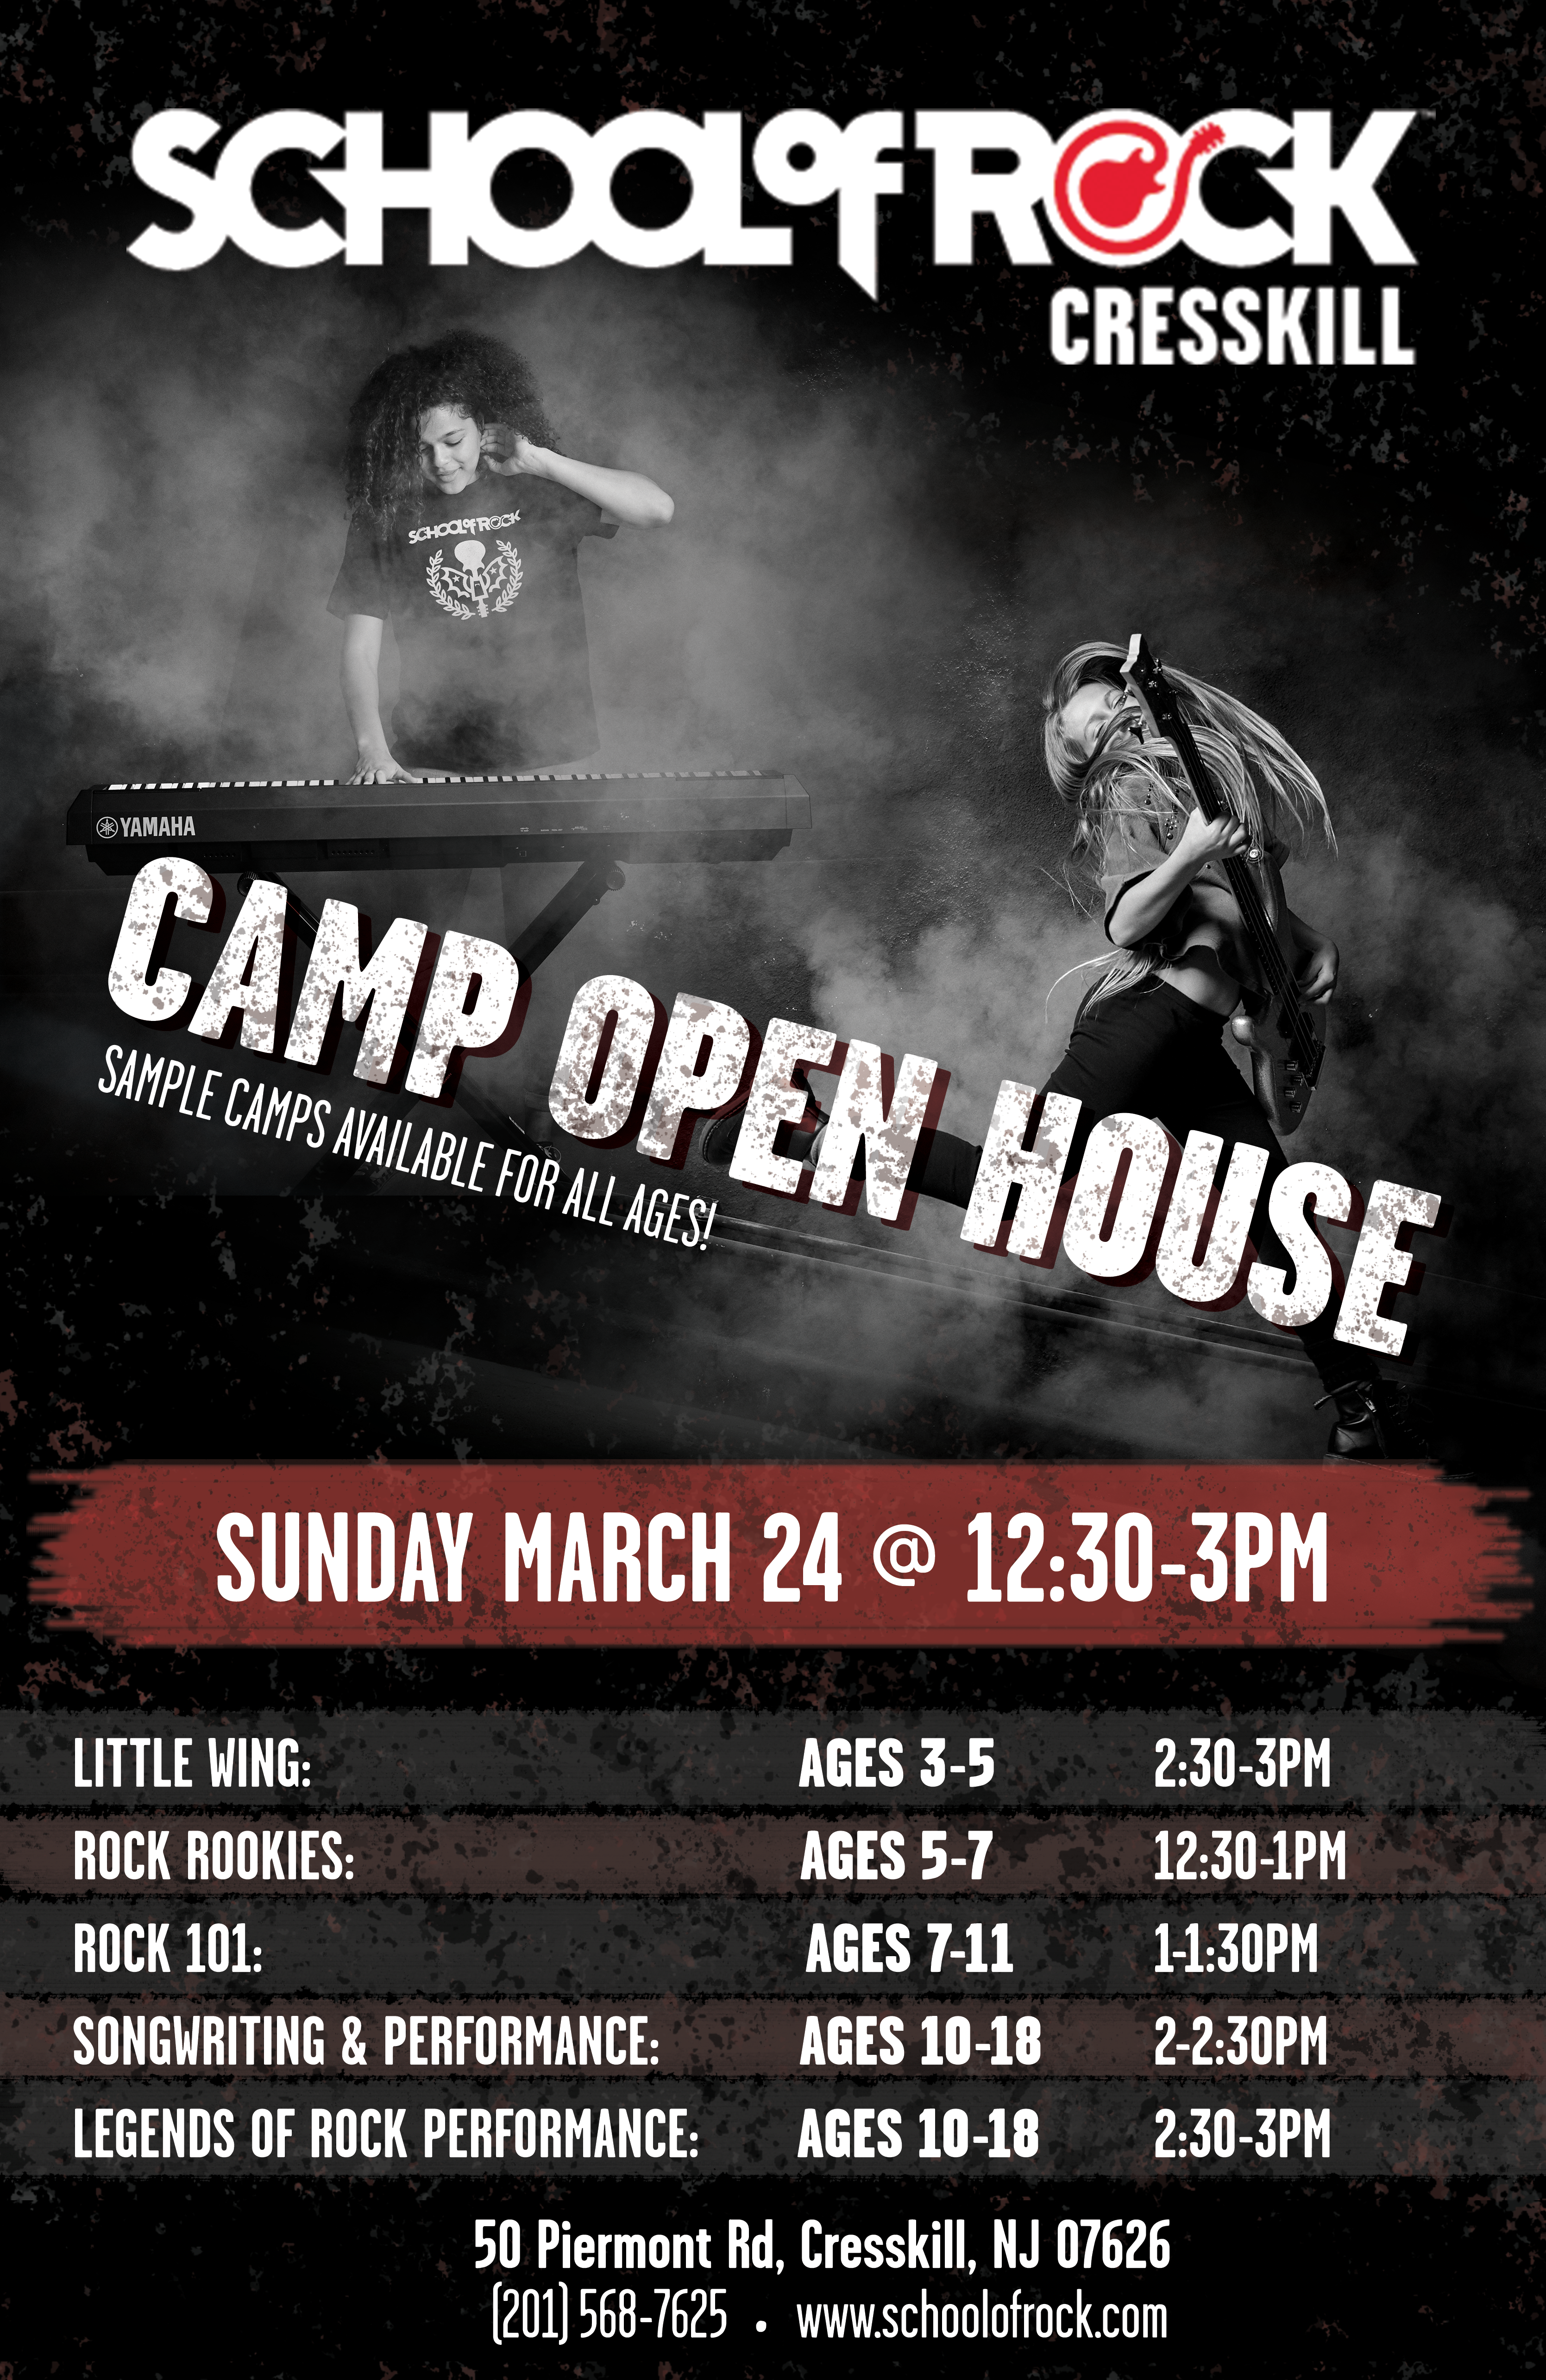 School of Rock Cresskill Camp Open House